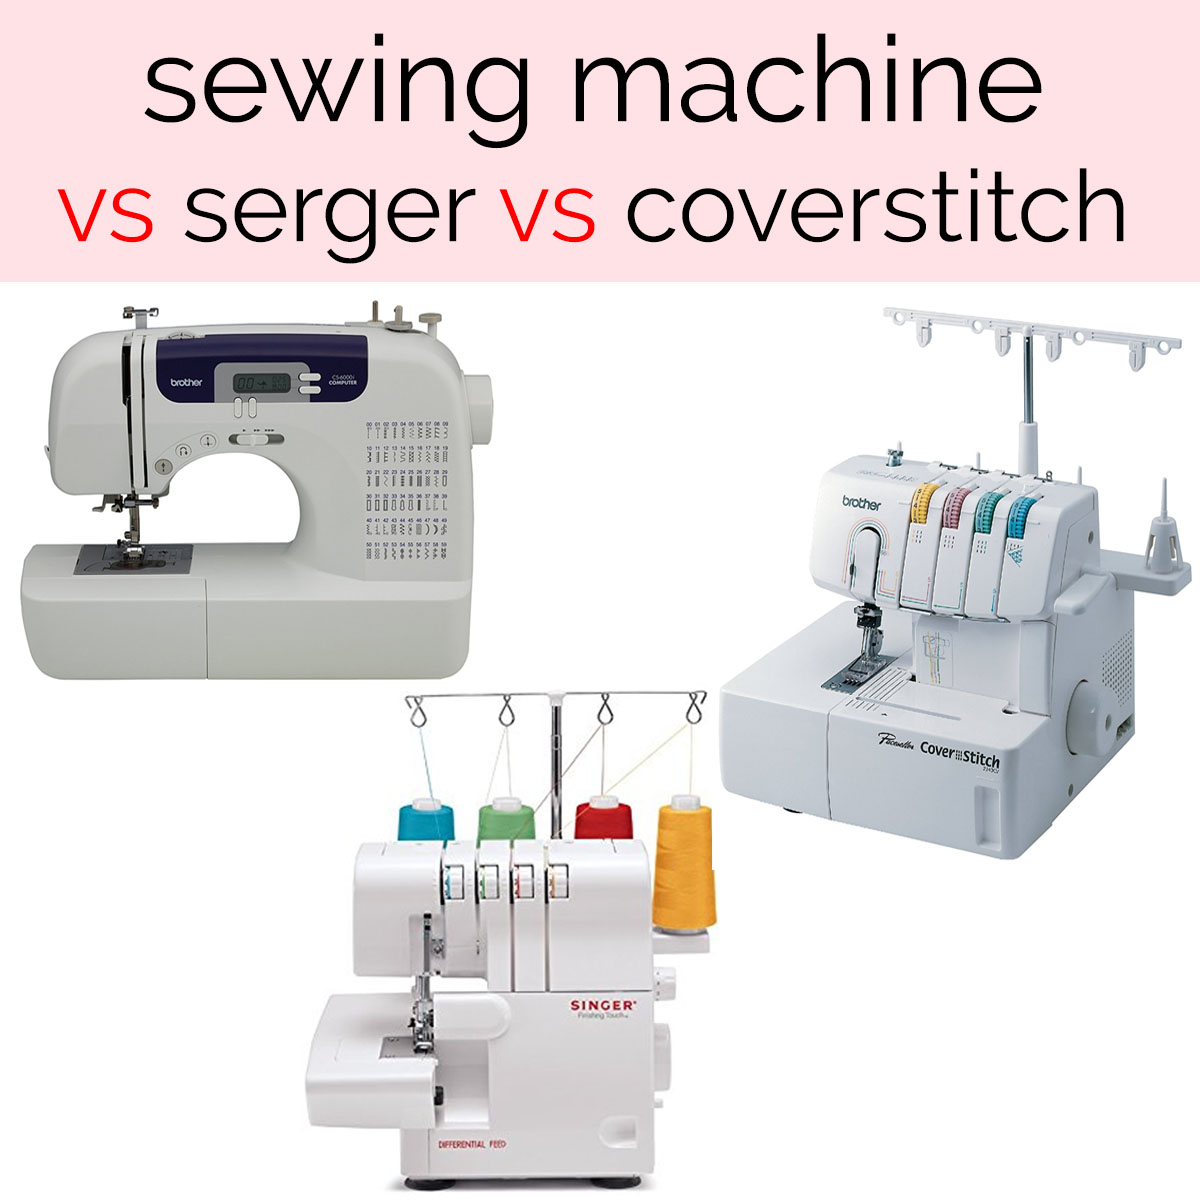 Sewing Machine vs Serger vs Coverstitch: The Difference